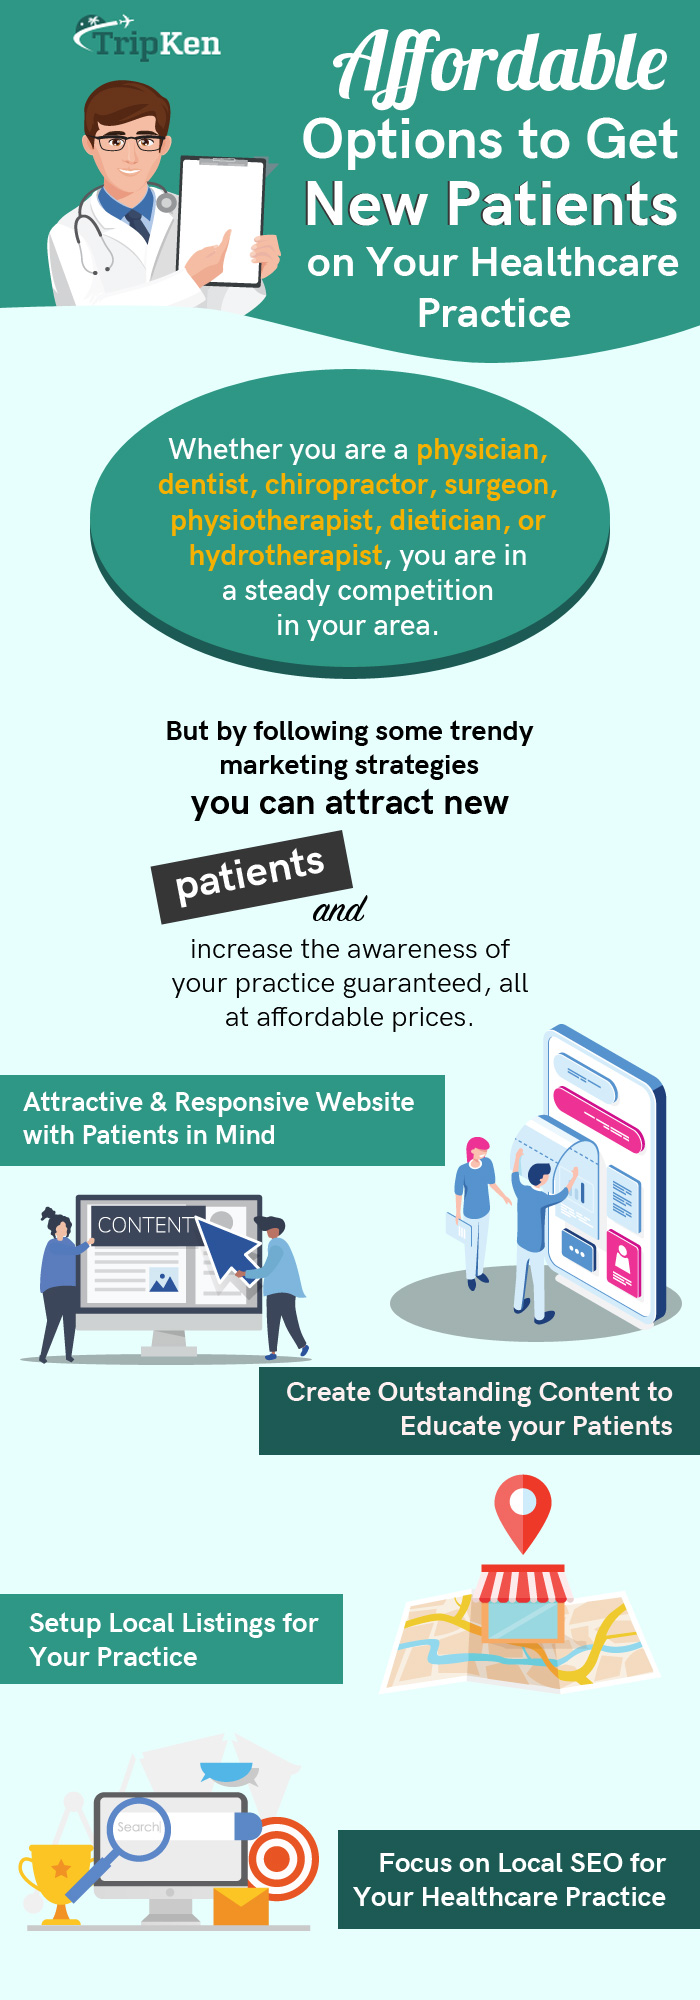 Affordable Options to Get New Patients on Your Healthcare Practice